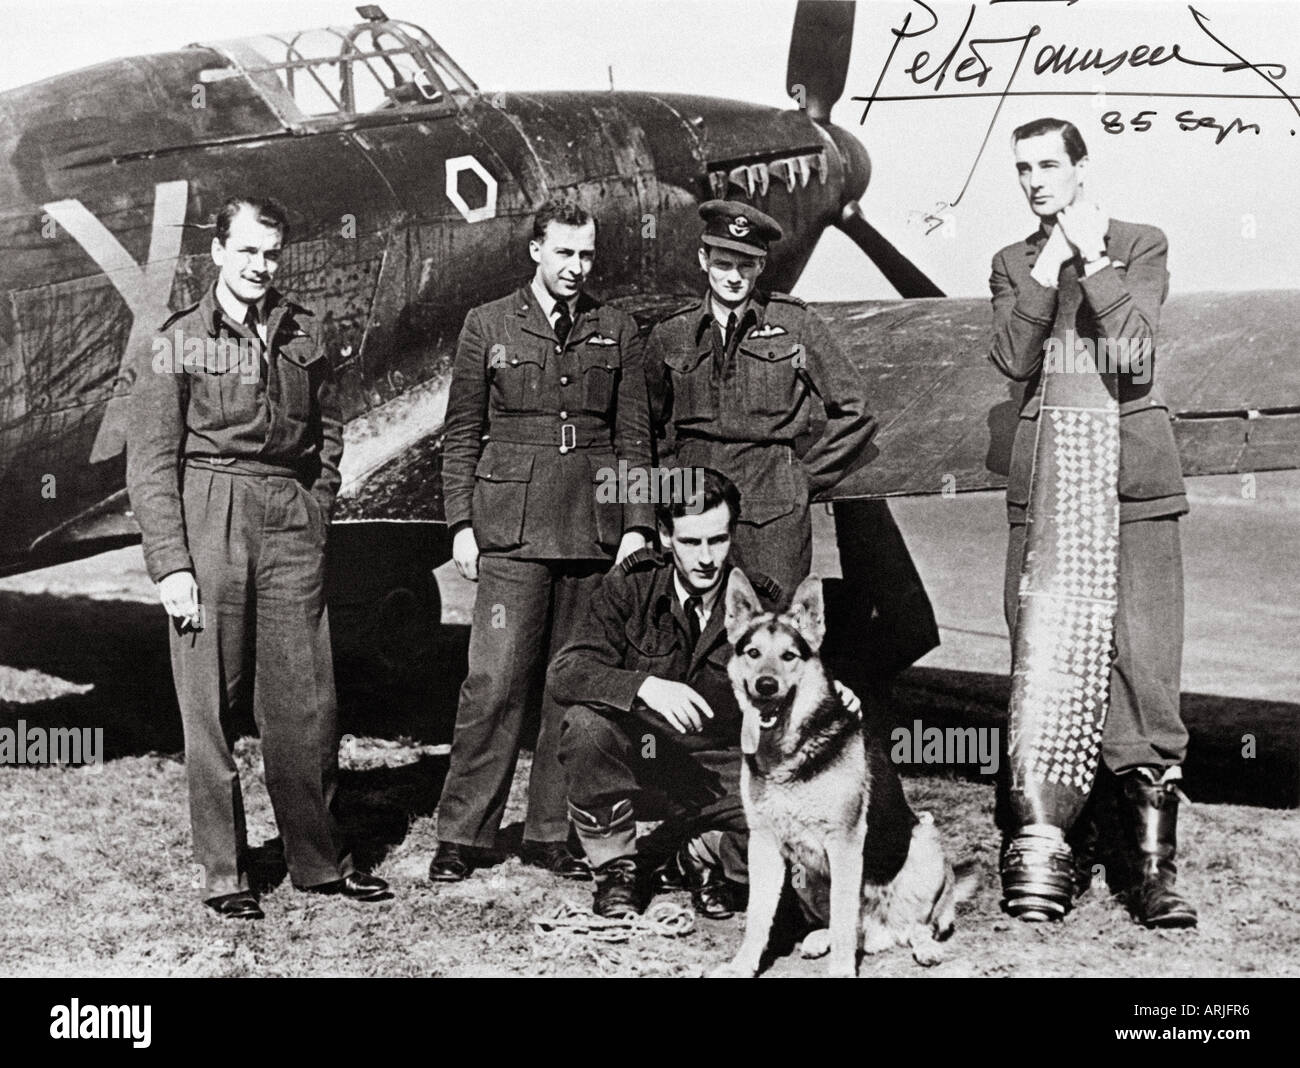 PETER TOWNSEND  RAF commander - see description below - Stock Image